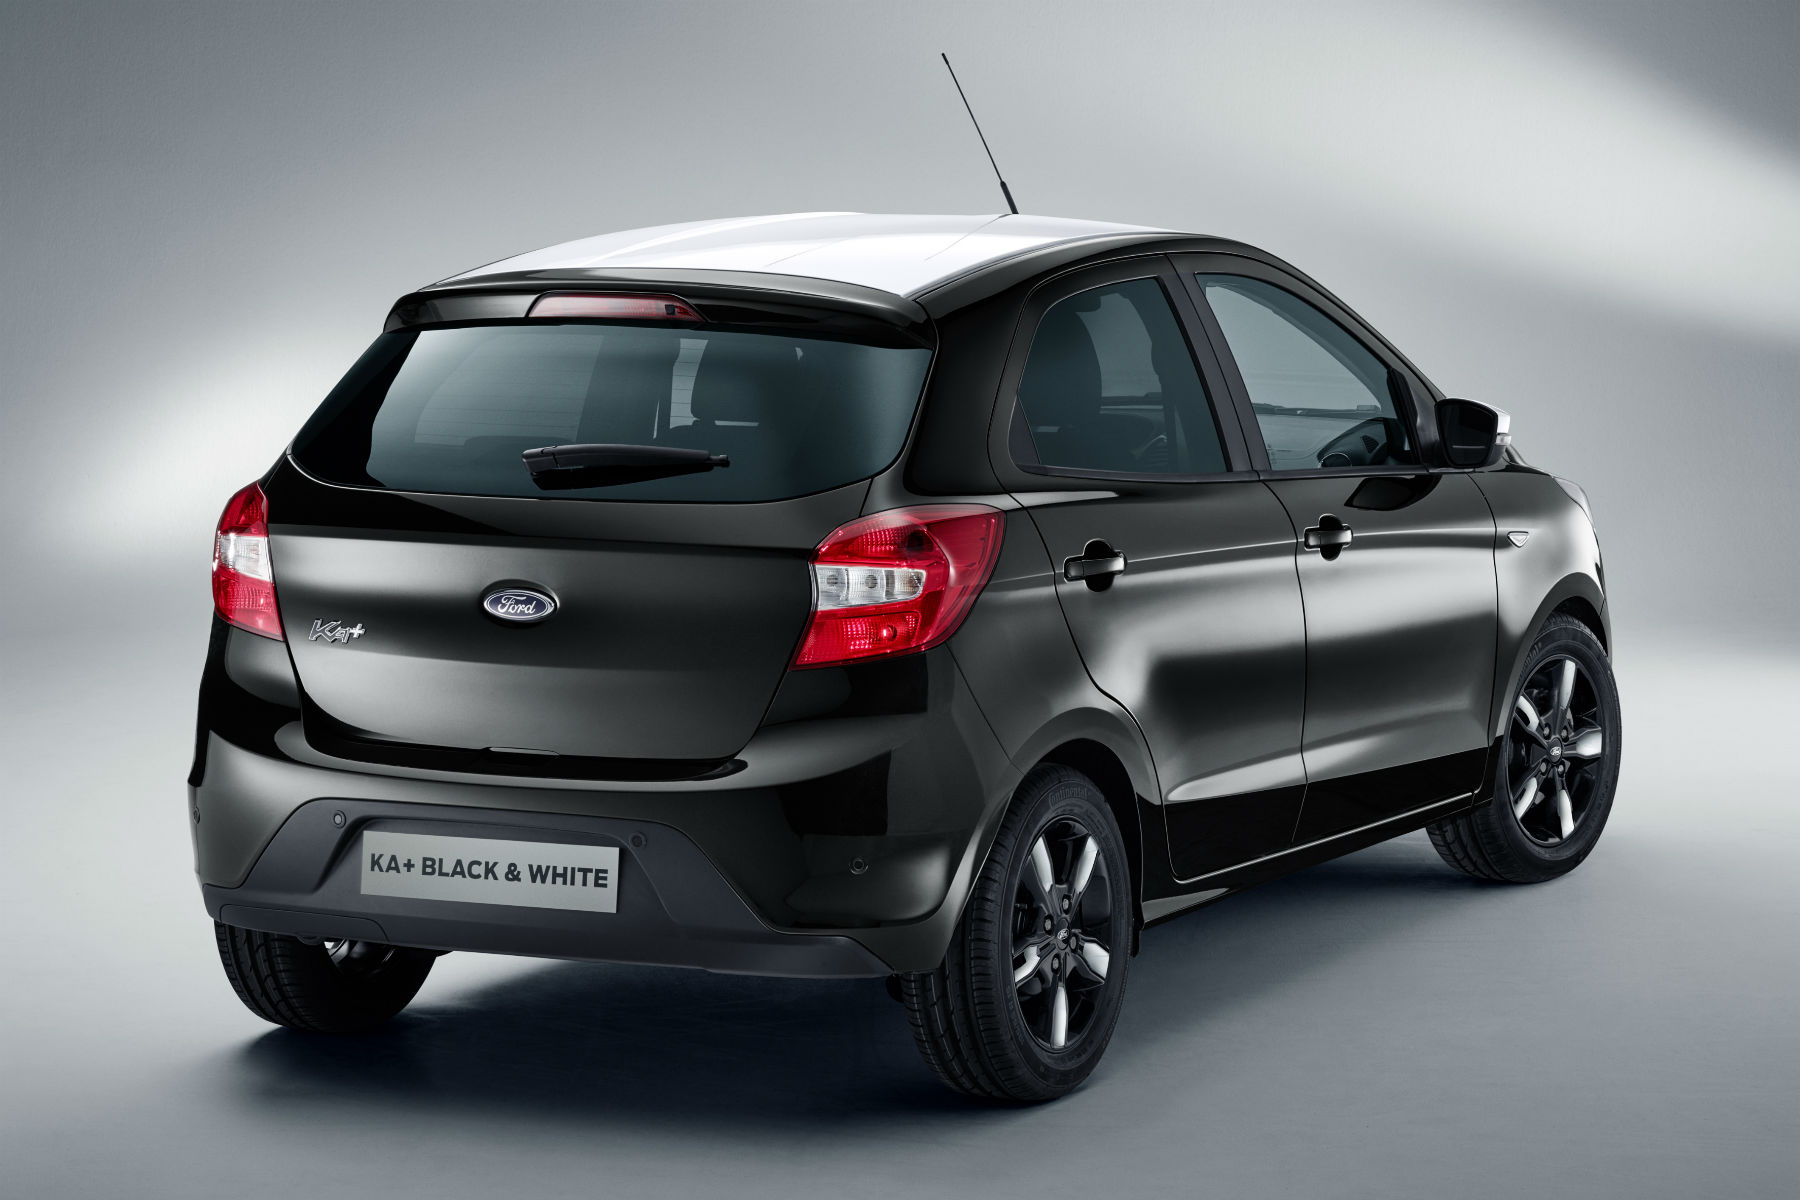 2017 fiesta to move upmarket as ford launches budget ka. Black Bedroom Furniture Sets. Home Design Ideas